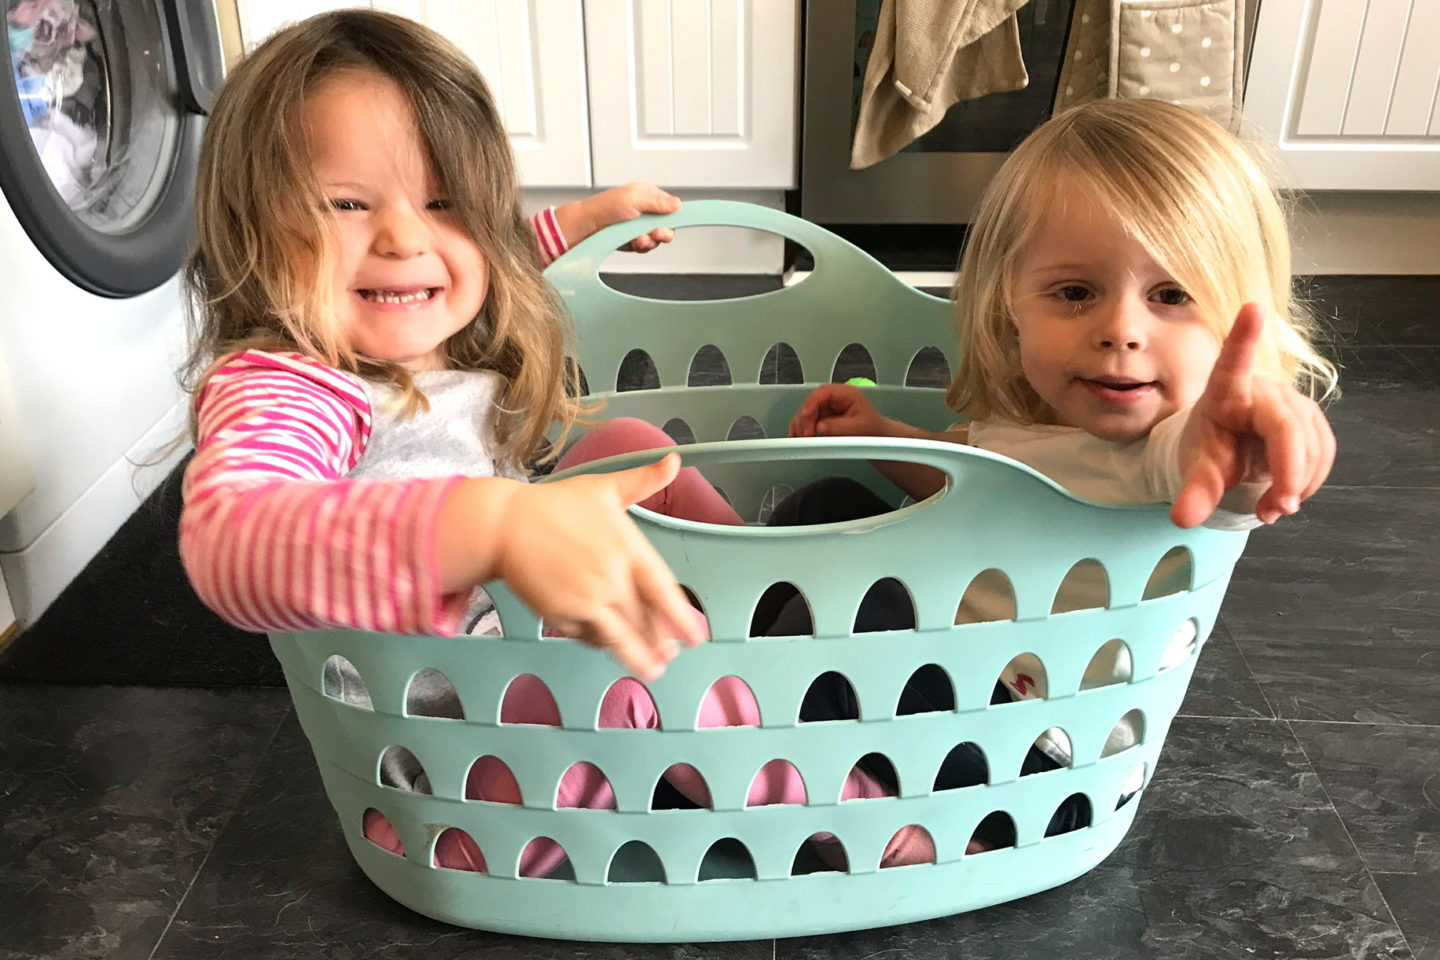 two sisters sitting in a washing basket, laughing